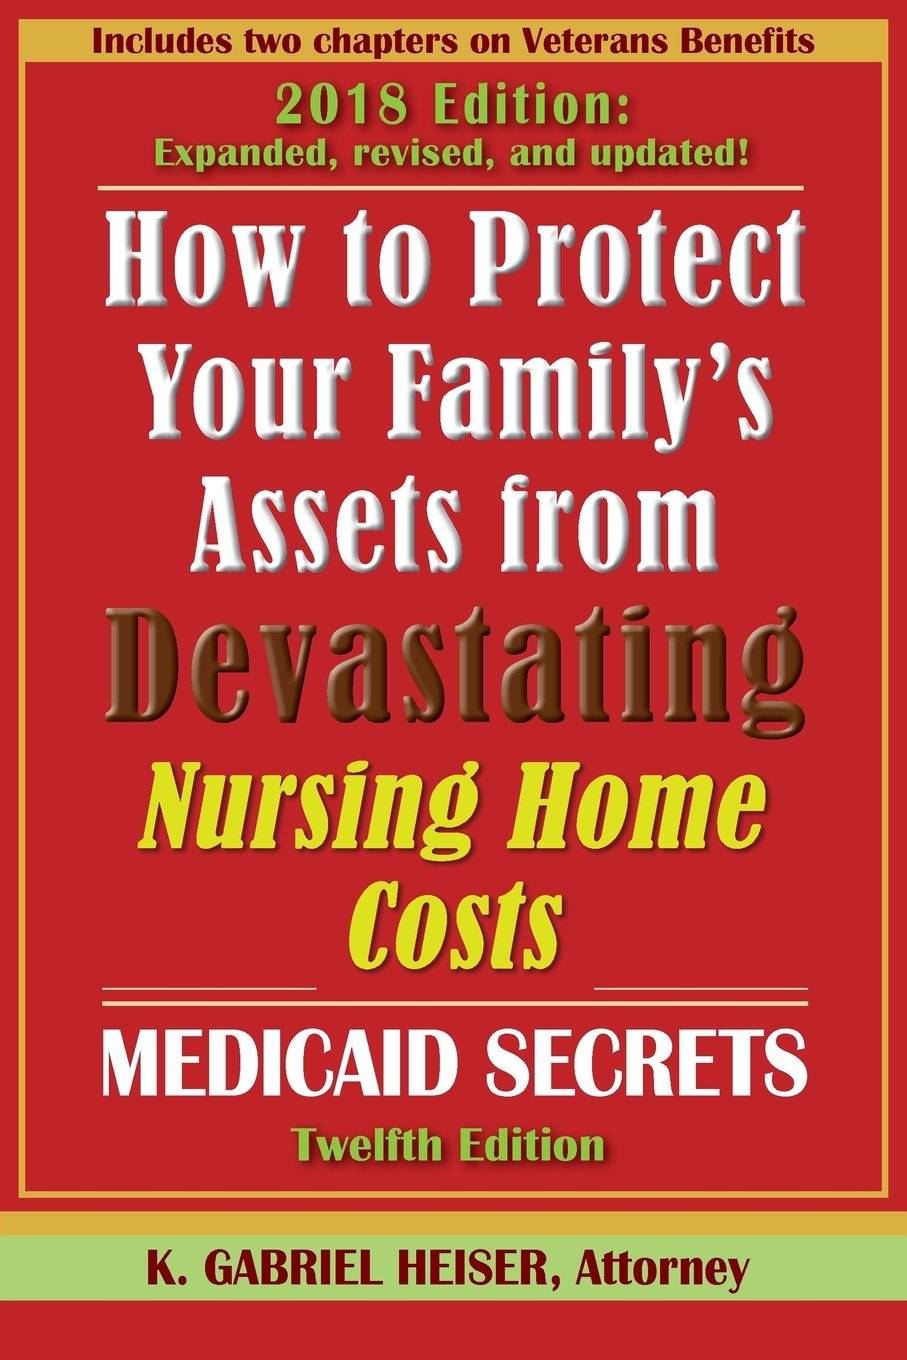 How to Protect Your Family's Assets from Devastating Nursing Home Costs: Medicaid Secrets (twelfth Ed.)